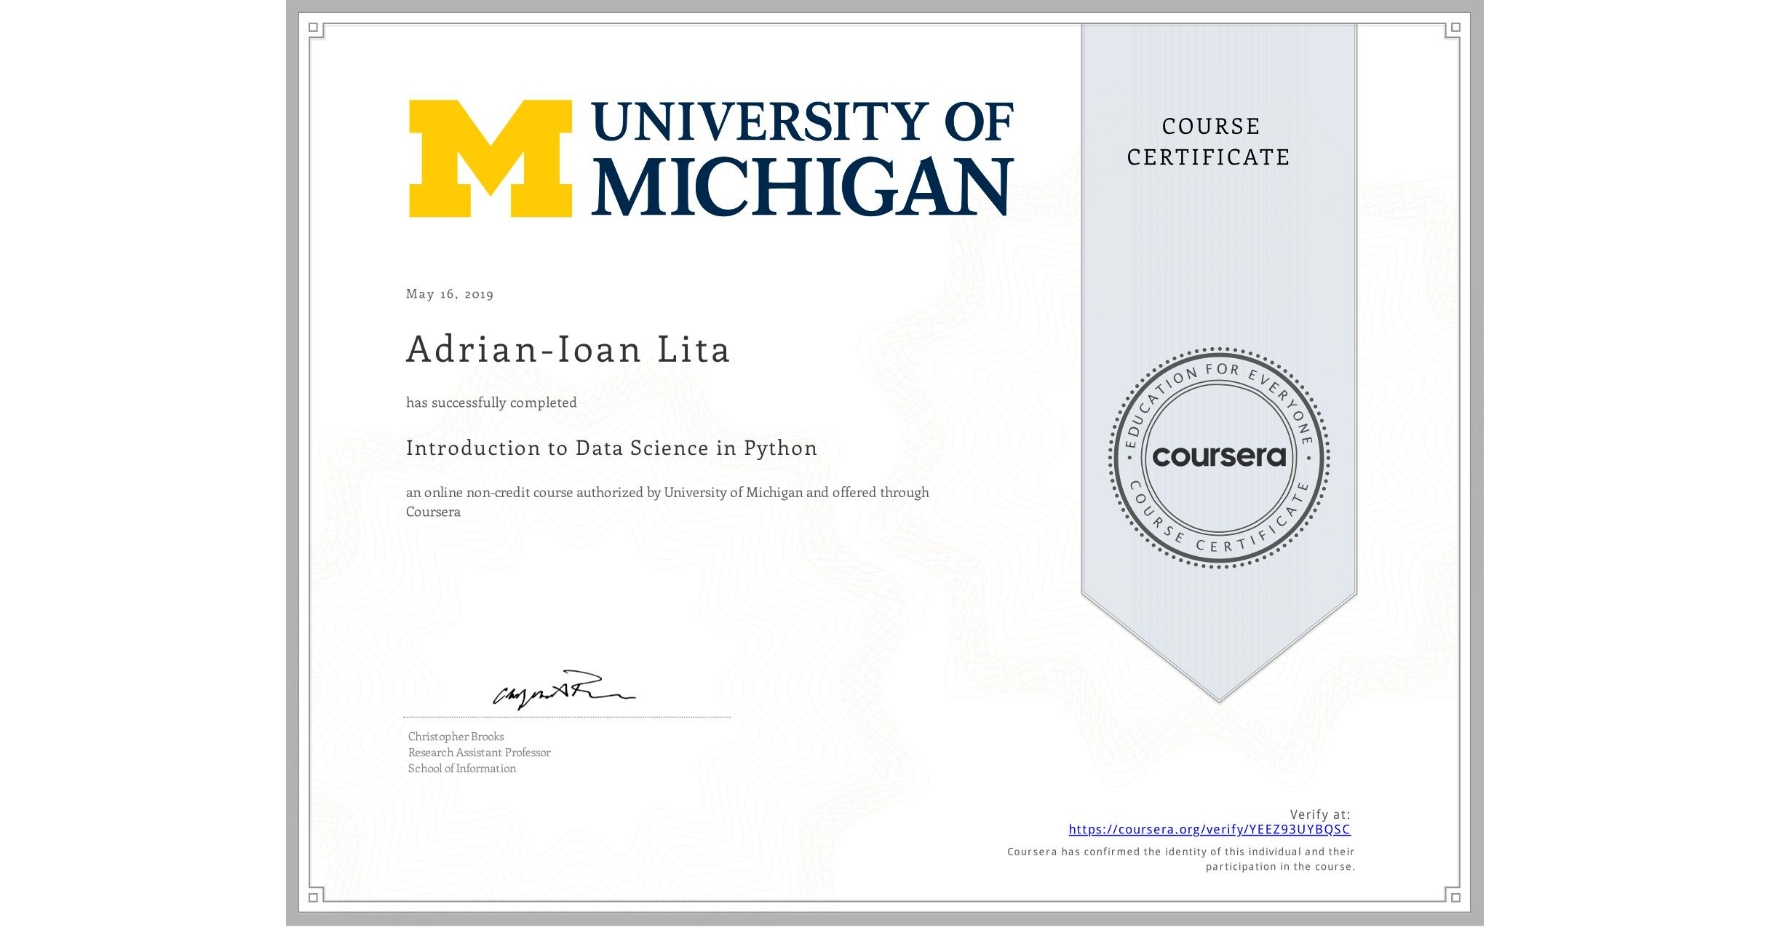 View certificate for Adrian-Ioan Lita, Introduction to Data Science in Python, an online non-credit course authorized by University of Michigan and offered through Coursera